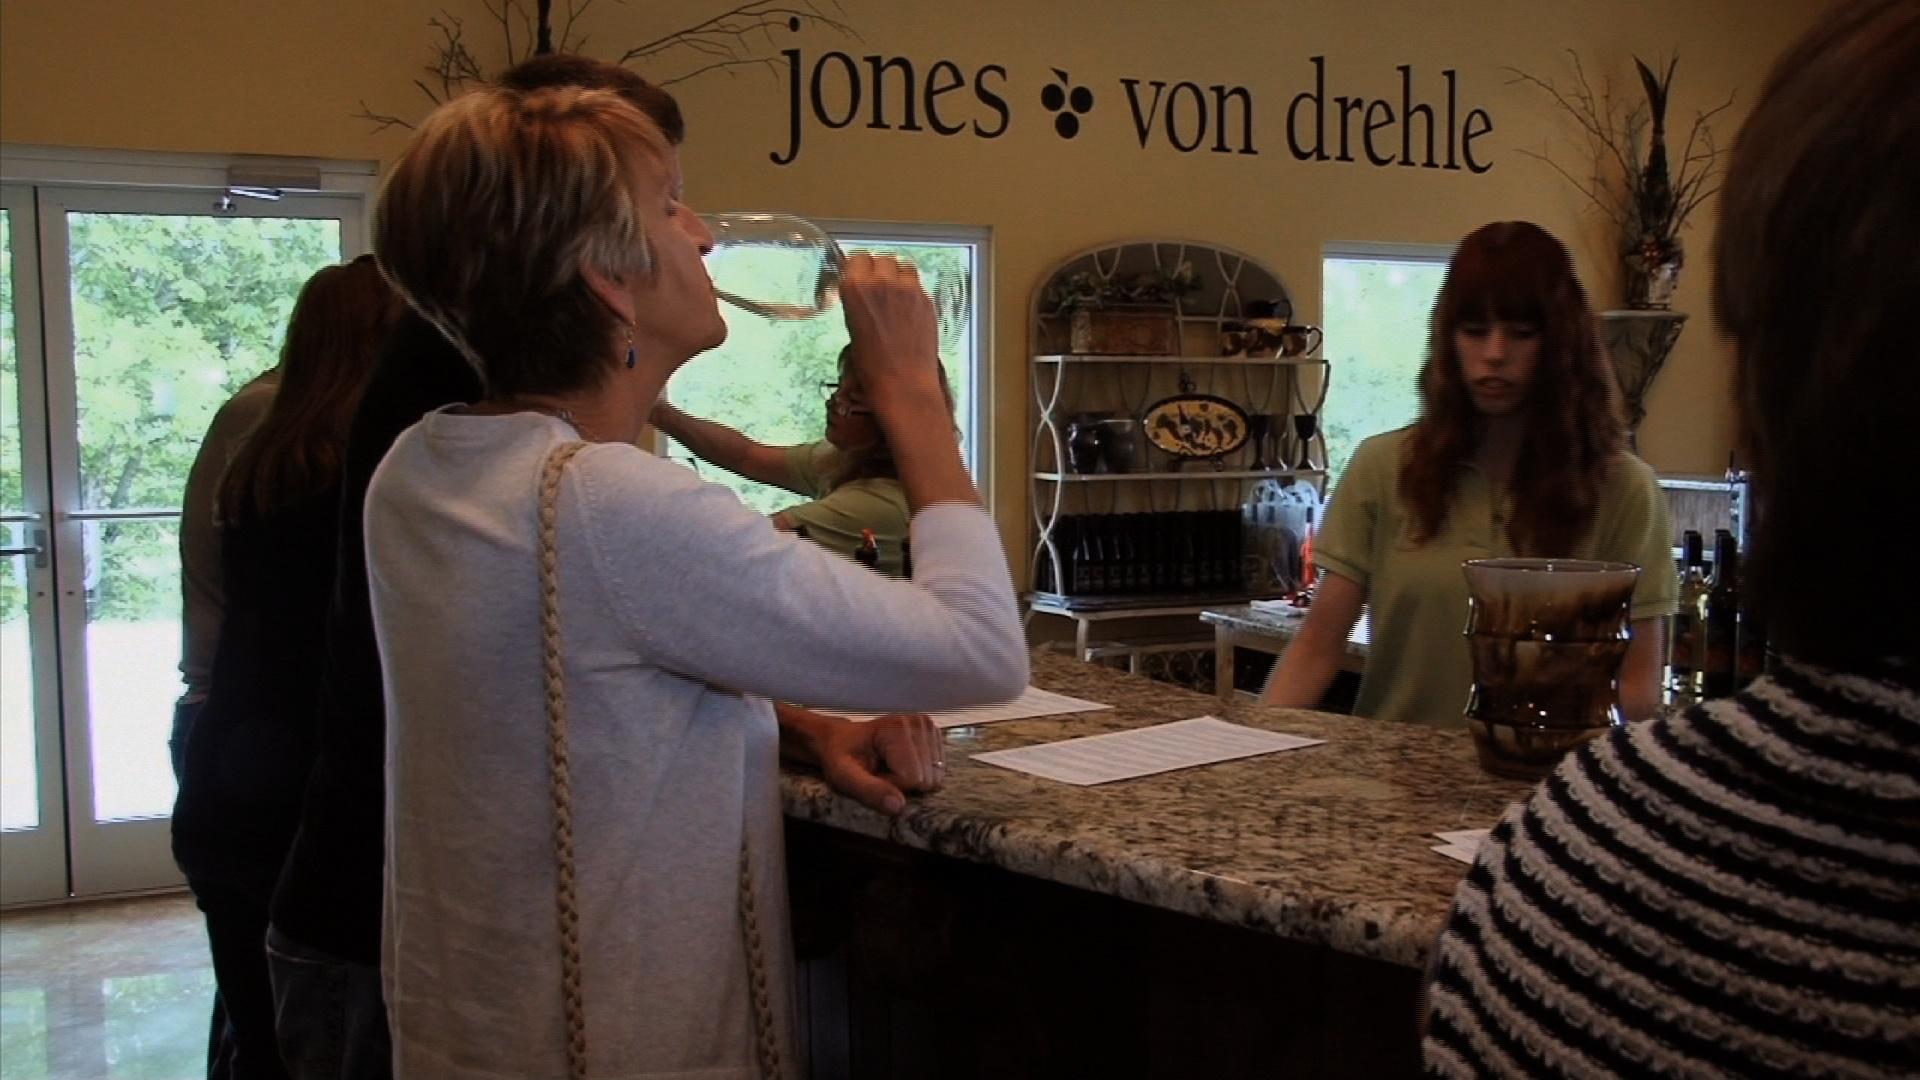 video jones von drehle vineyard winery watch nc. Black Bedroom Furniture Sets. Home Design Ideas